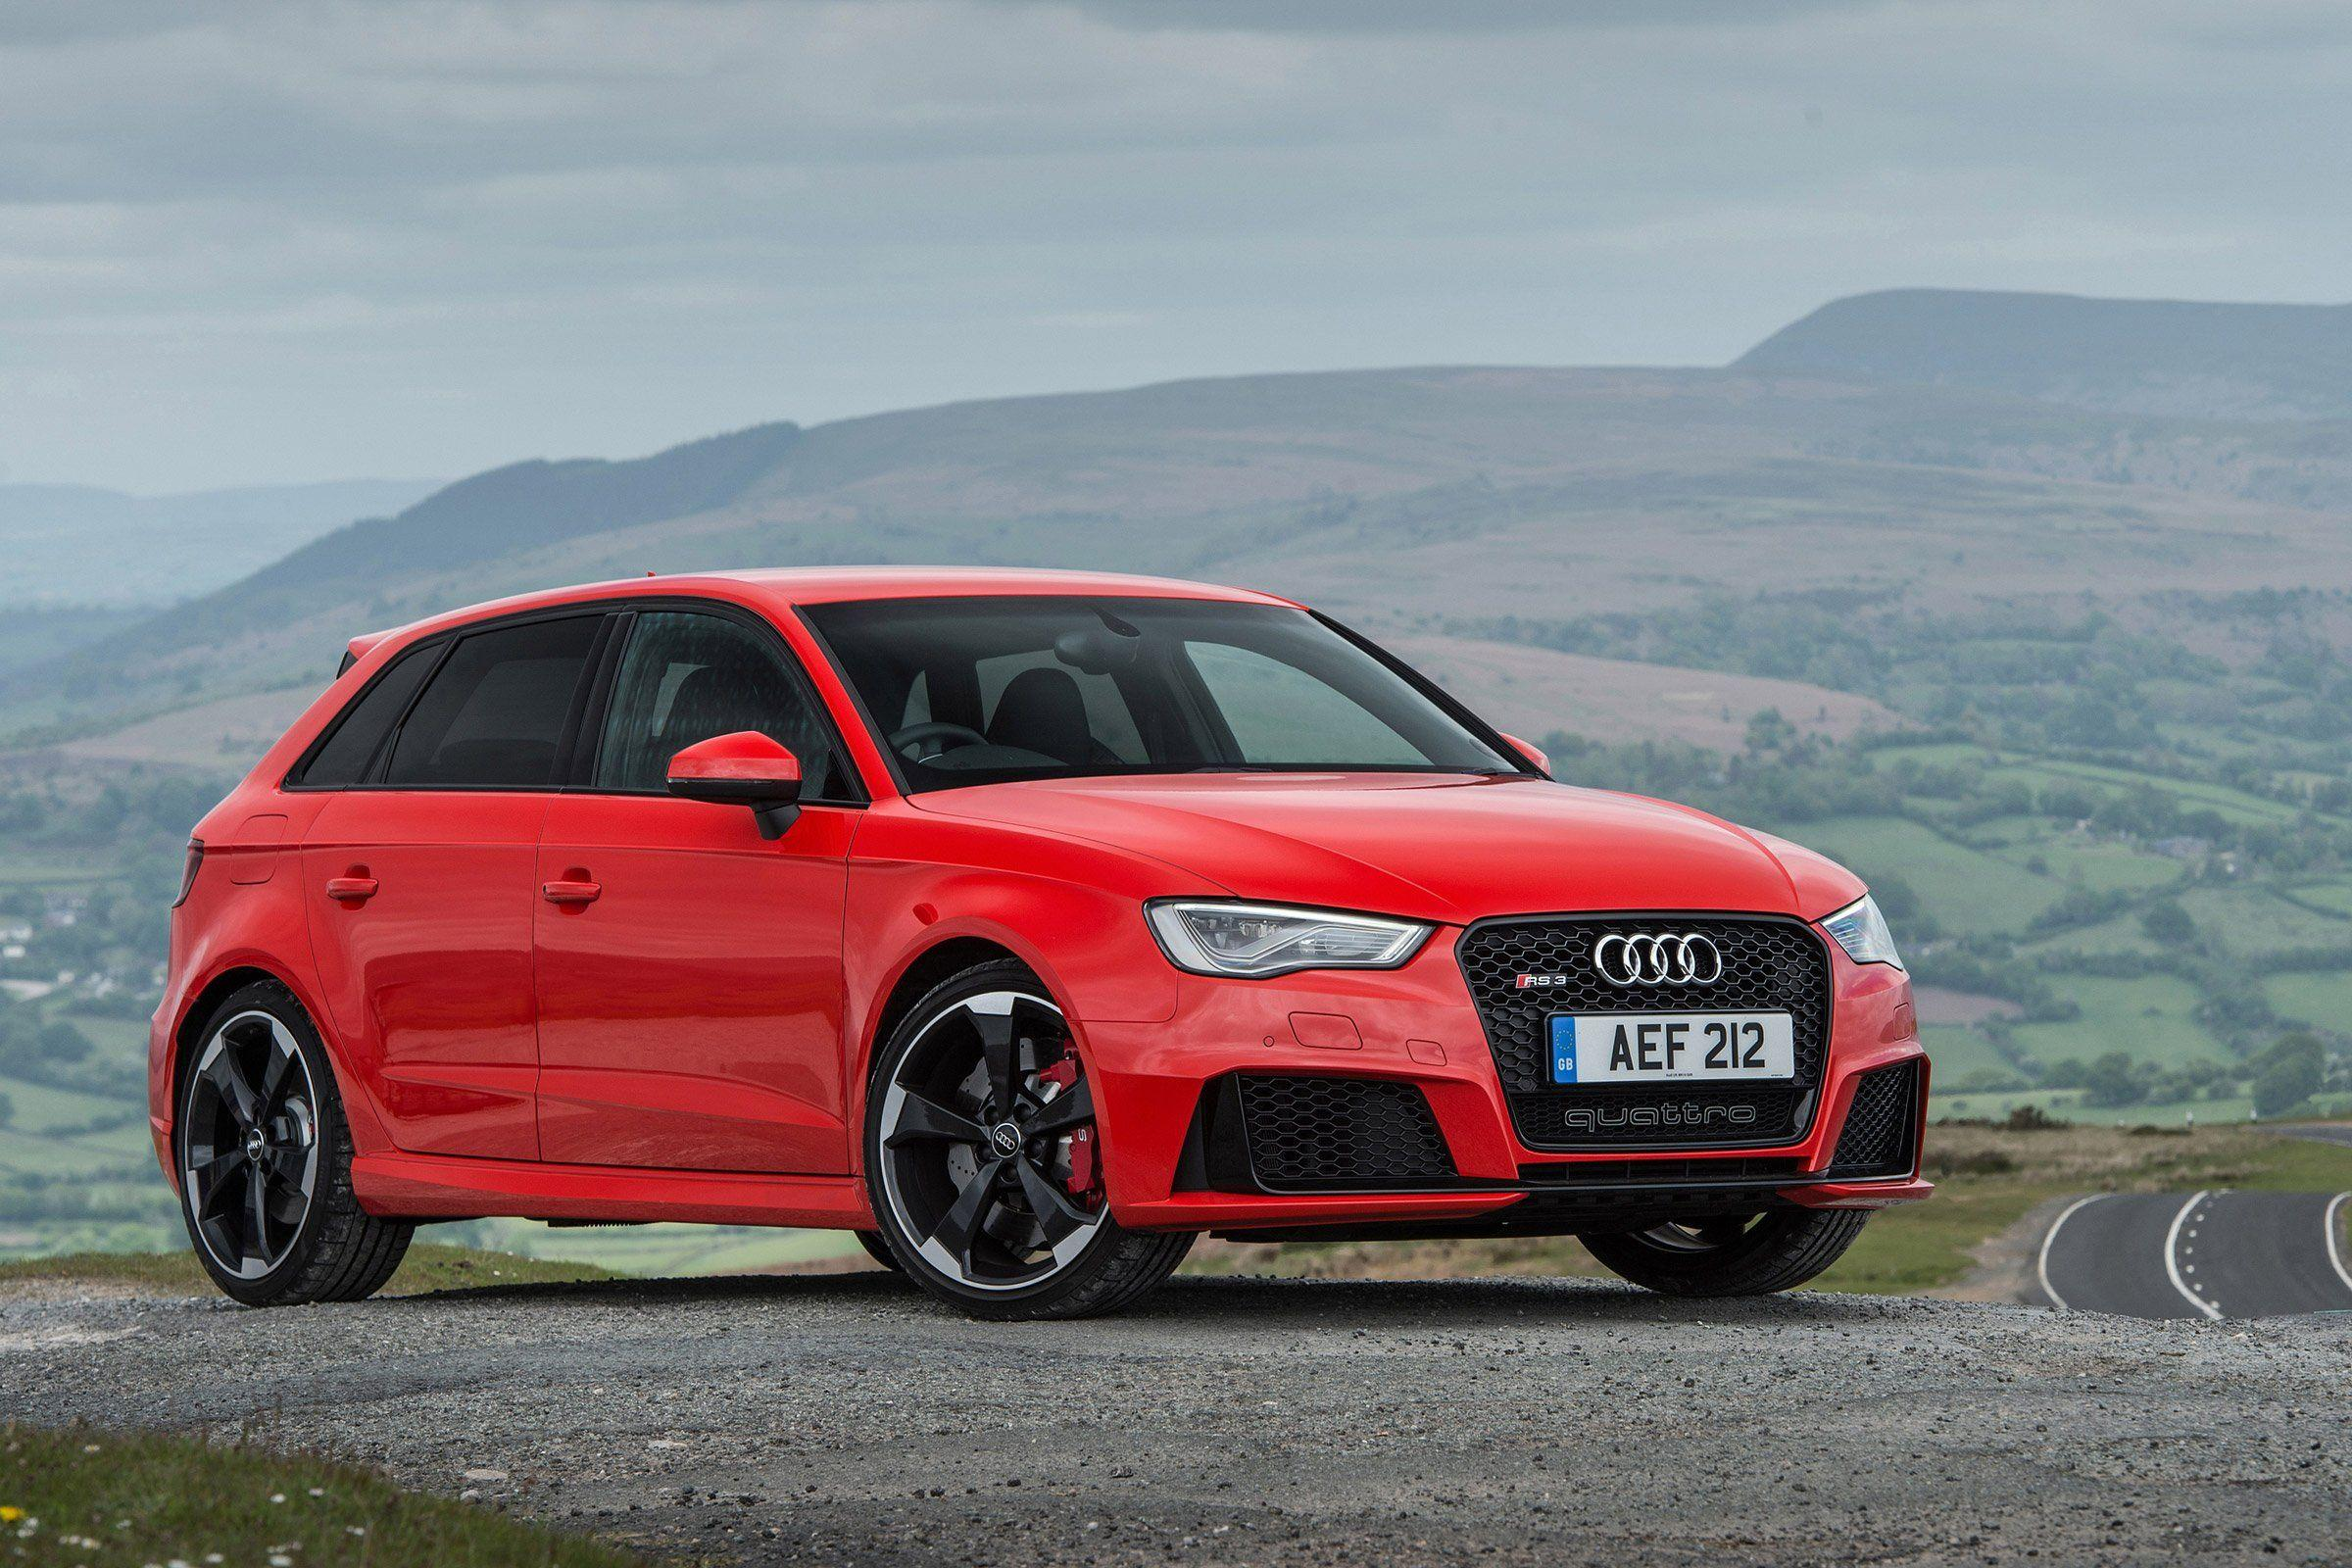 Audi RS3 Sportback UK-spec cars 2015 wallpaper | 2400x1600 ...